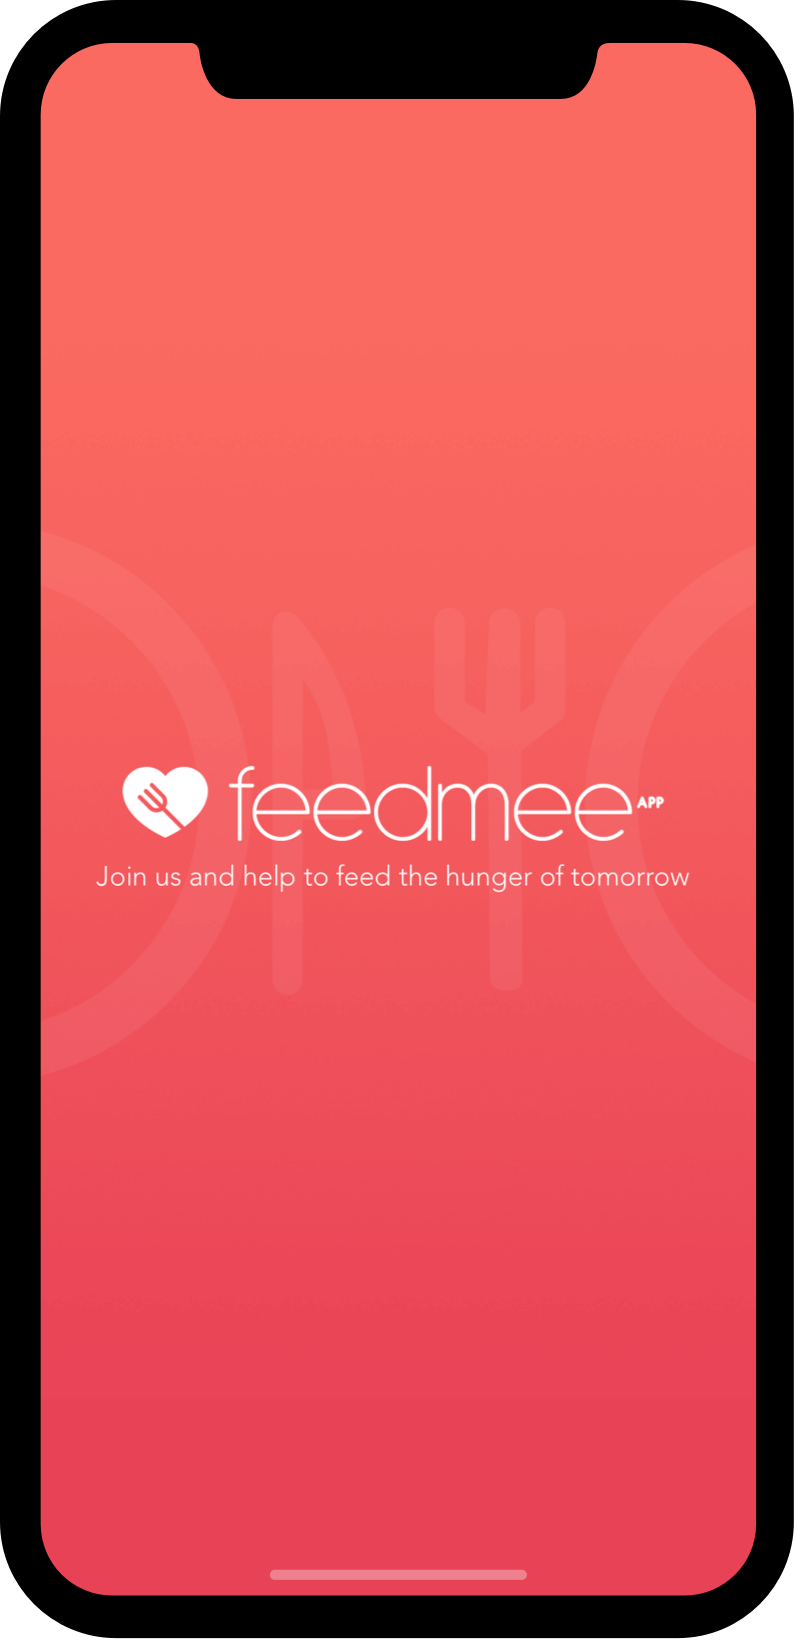 Feedmee app on phone